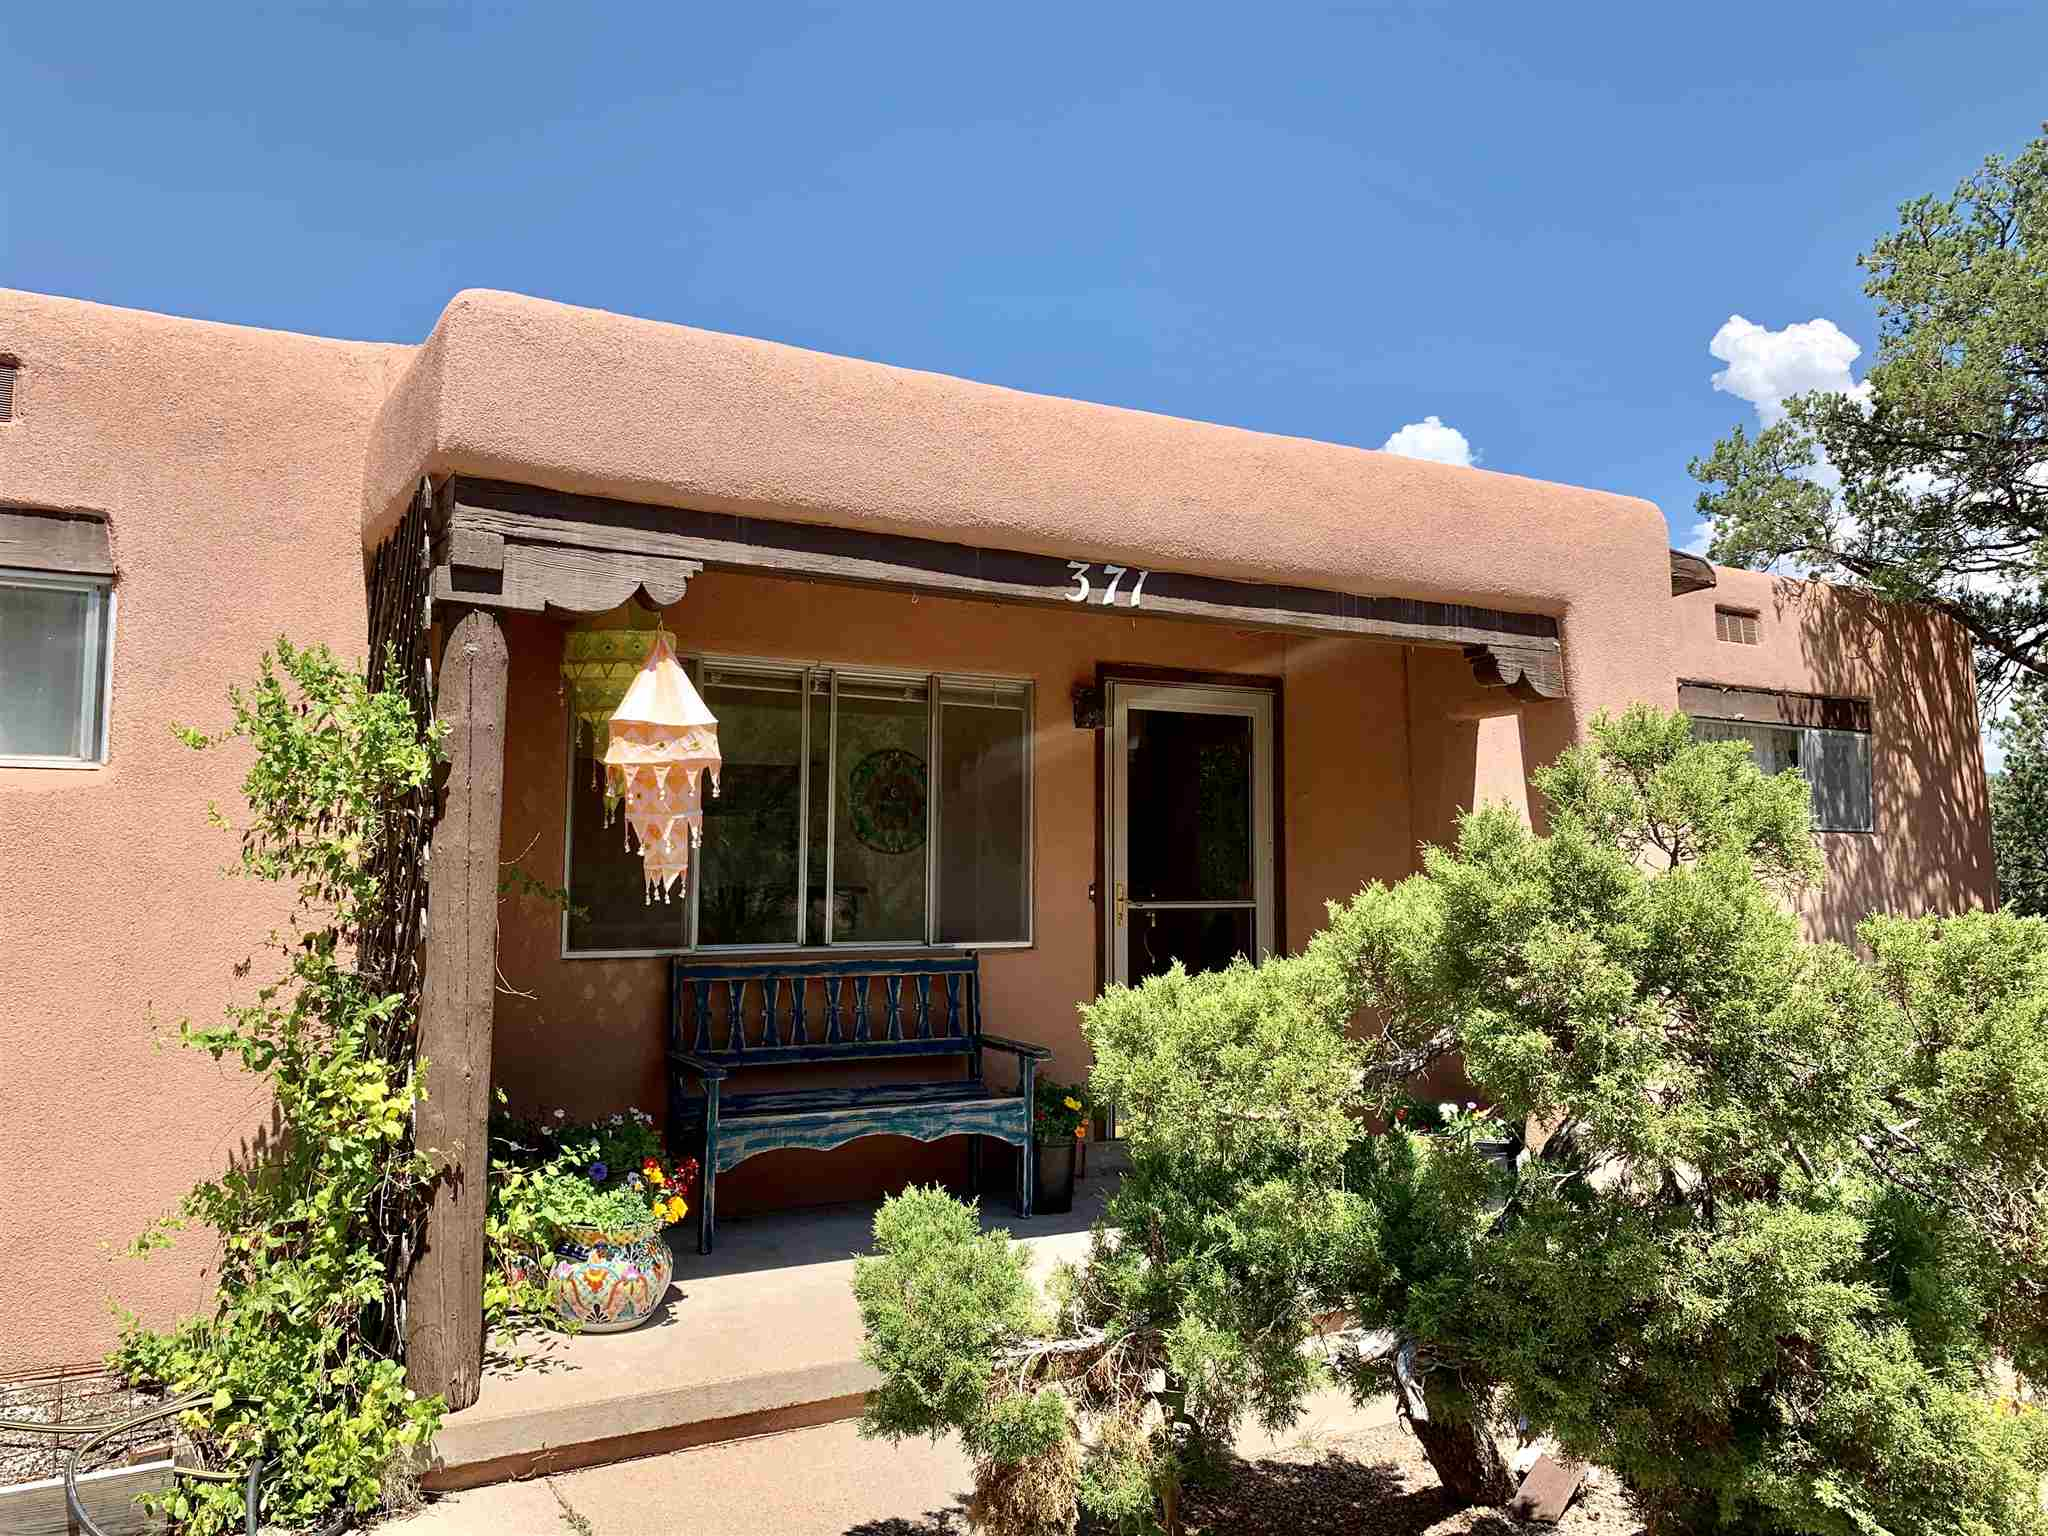 Wonderful opportunity to own in central Santa Fe. Close to Museum Hill and shopping. The entrance to the Botanical Garden path is just across the street from the property on Old Pecos Trail. Enjoy mountain views and a 1.73-acre lot. The home's original condition has been well maintained and is looking for a new owner to put their own special touches in place. Don't miss out on this fabulous property!